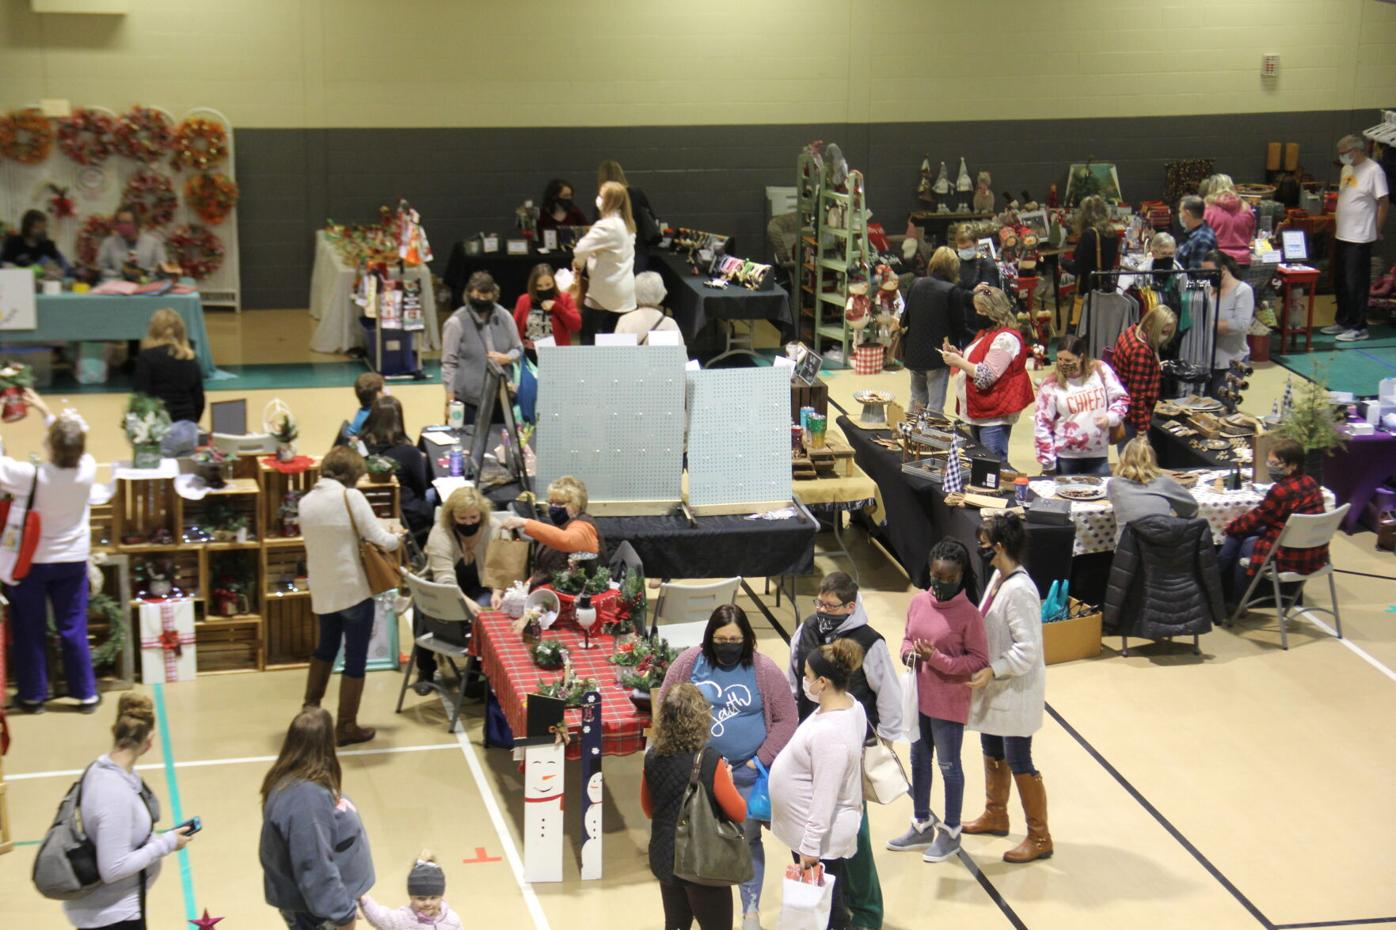 11-19-20 Craft Fair 6.JPG